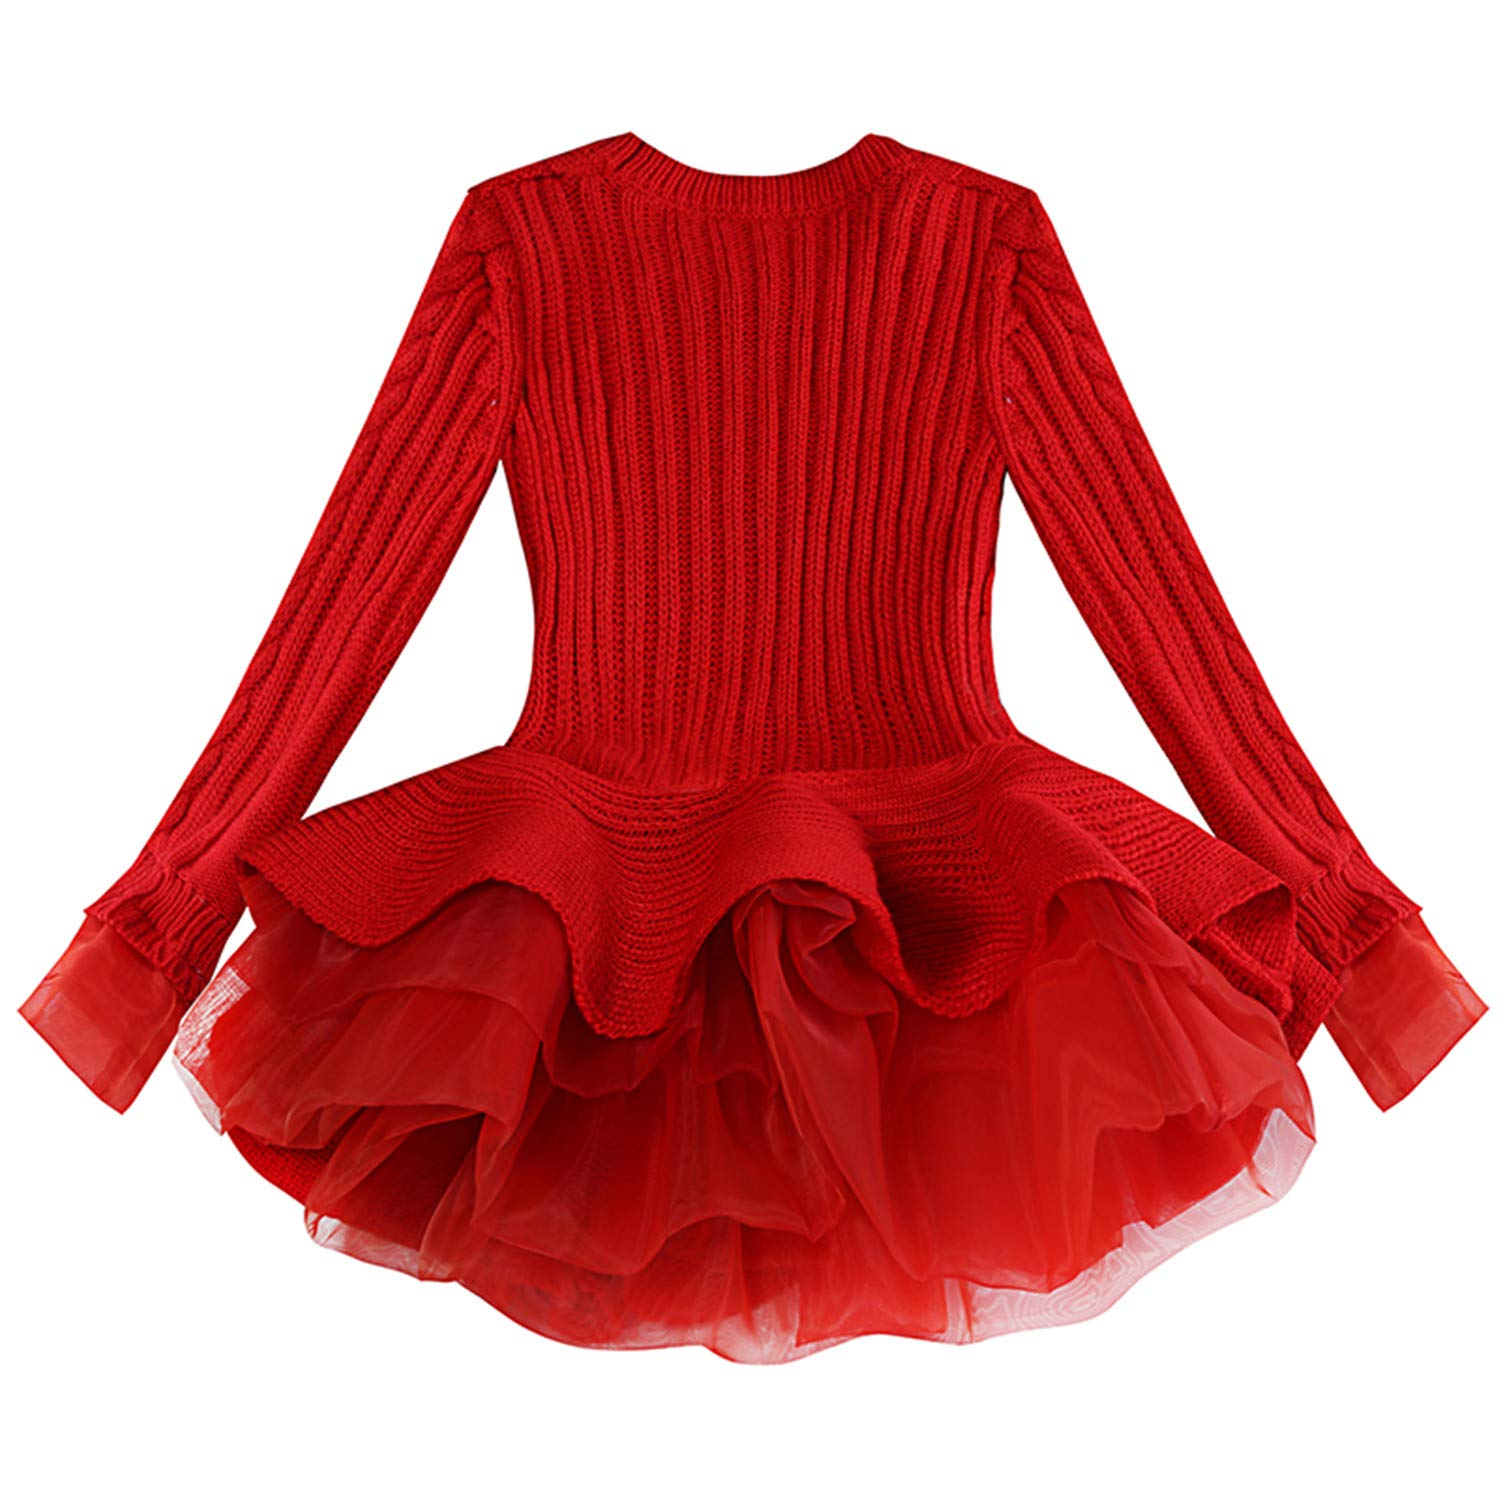 Showhole Baby Girl Clothes Organza Knitted Sweater Dress Long Sleeved Puff Princess Dress GirlsPullover Sweaters